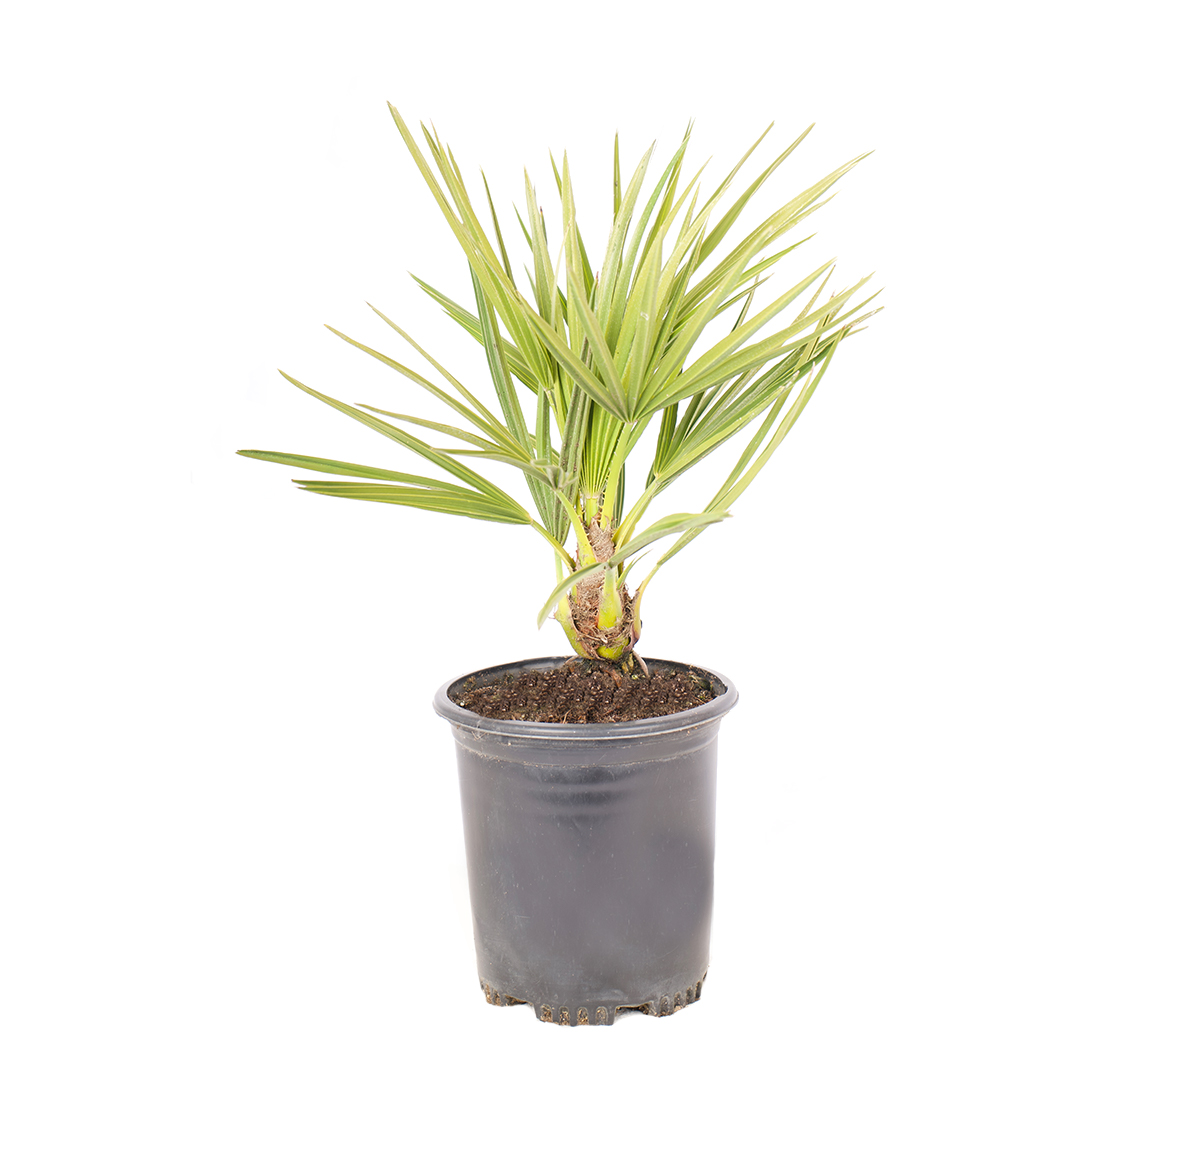 a single potted plant of European fan palm on of the hardiest palms